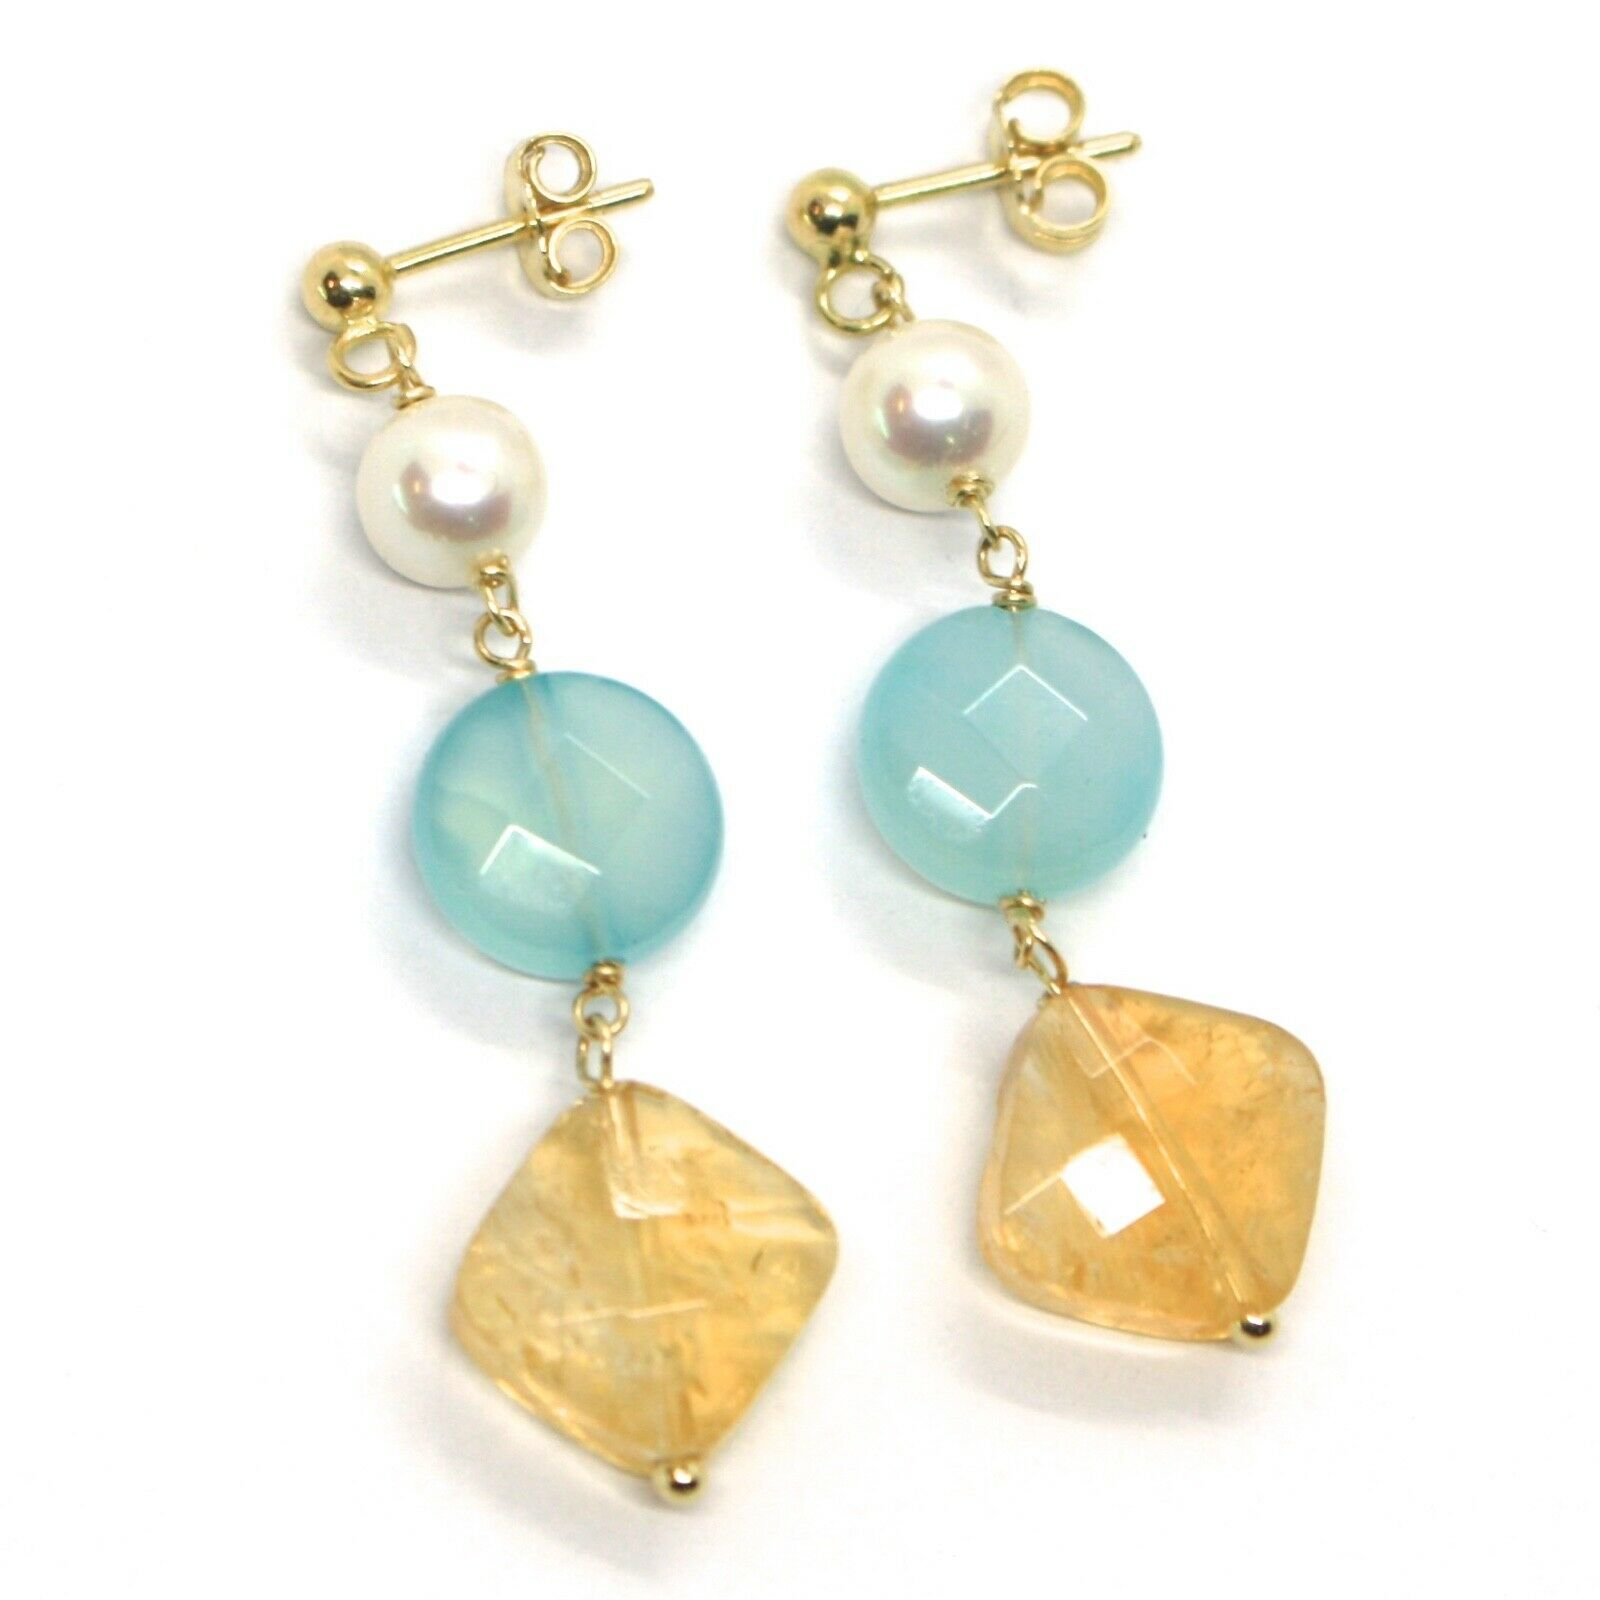 18K YELLOW GOLD PENDANT EARRINGS, PEARL, BLUE JADE AND CITRINE, 1.77 INCHES